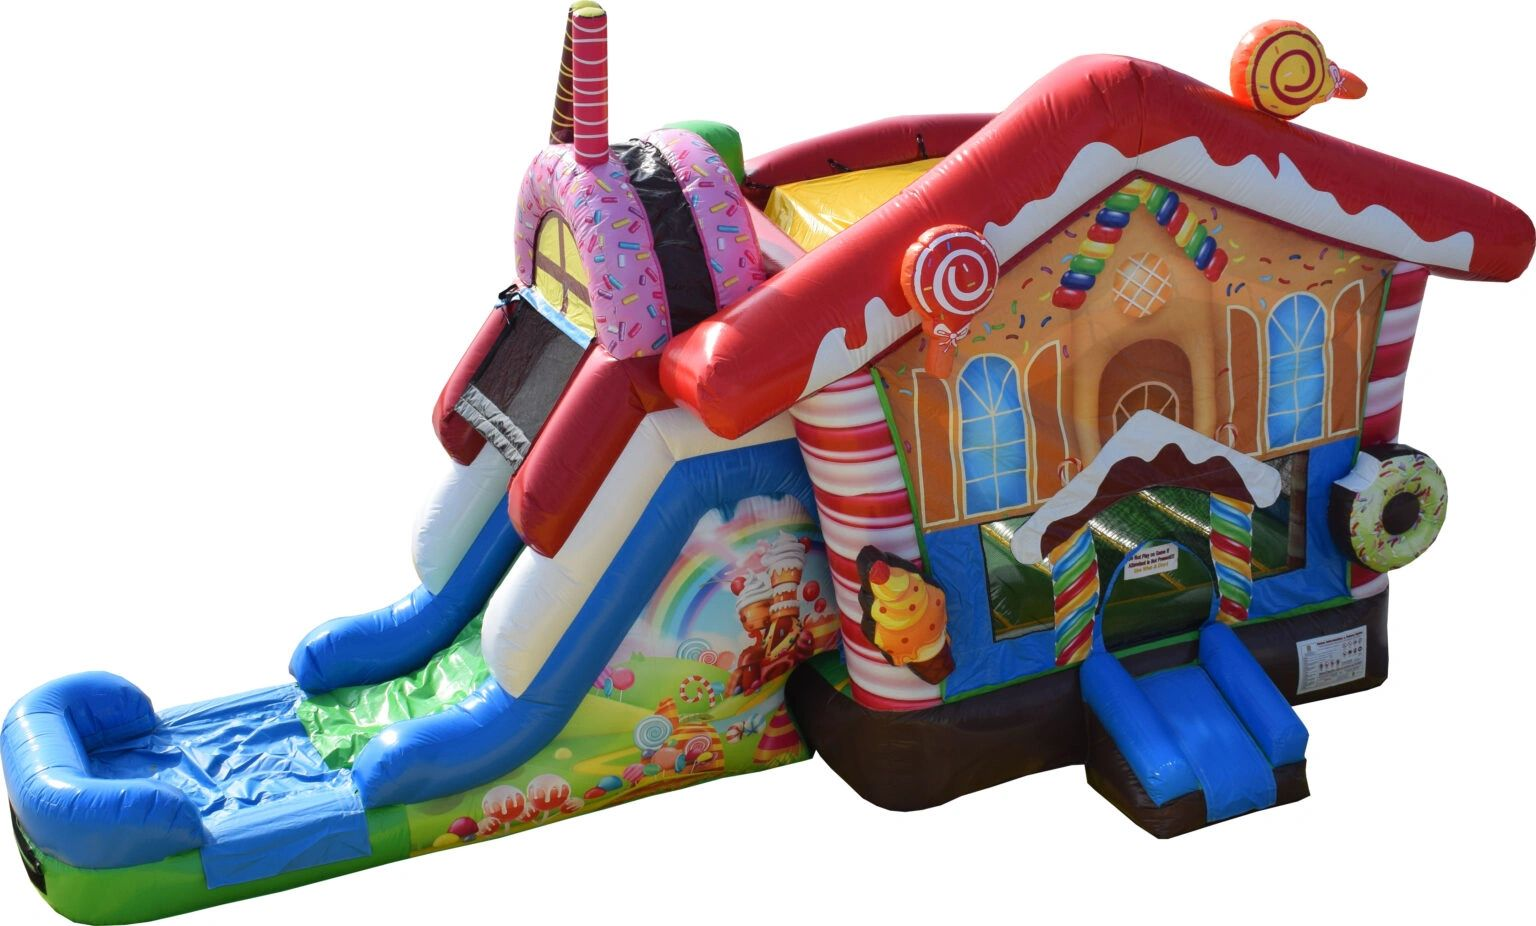 Candyland Bounce House Rental from www.itstime2bounce.com in Nashville TN